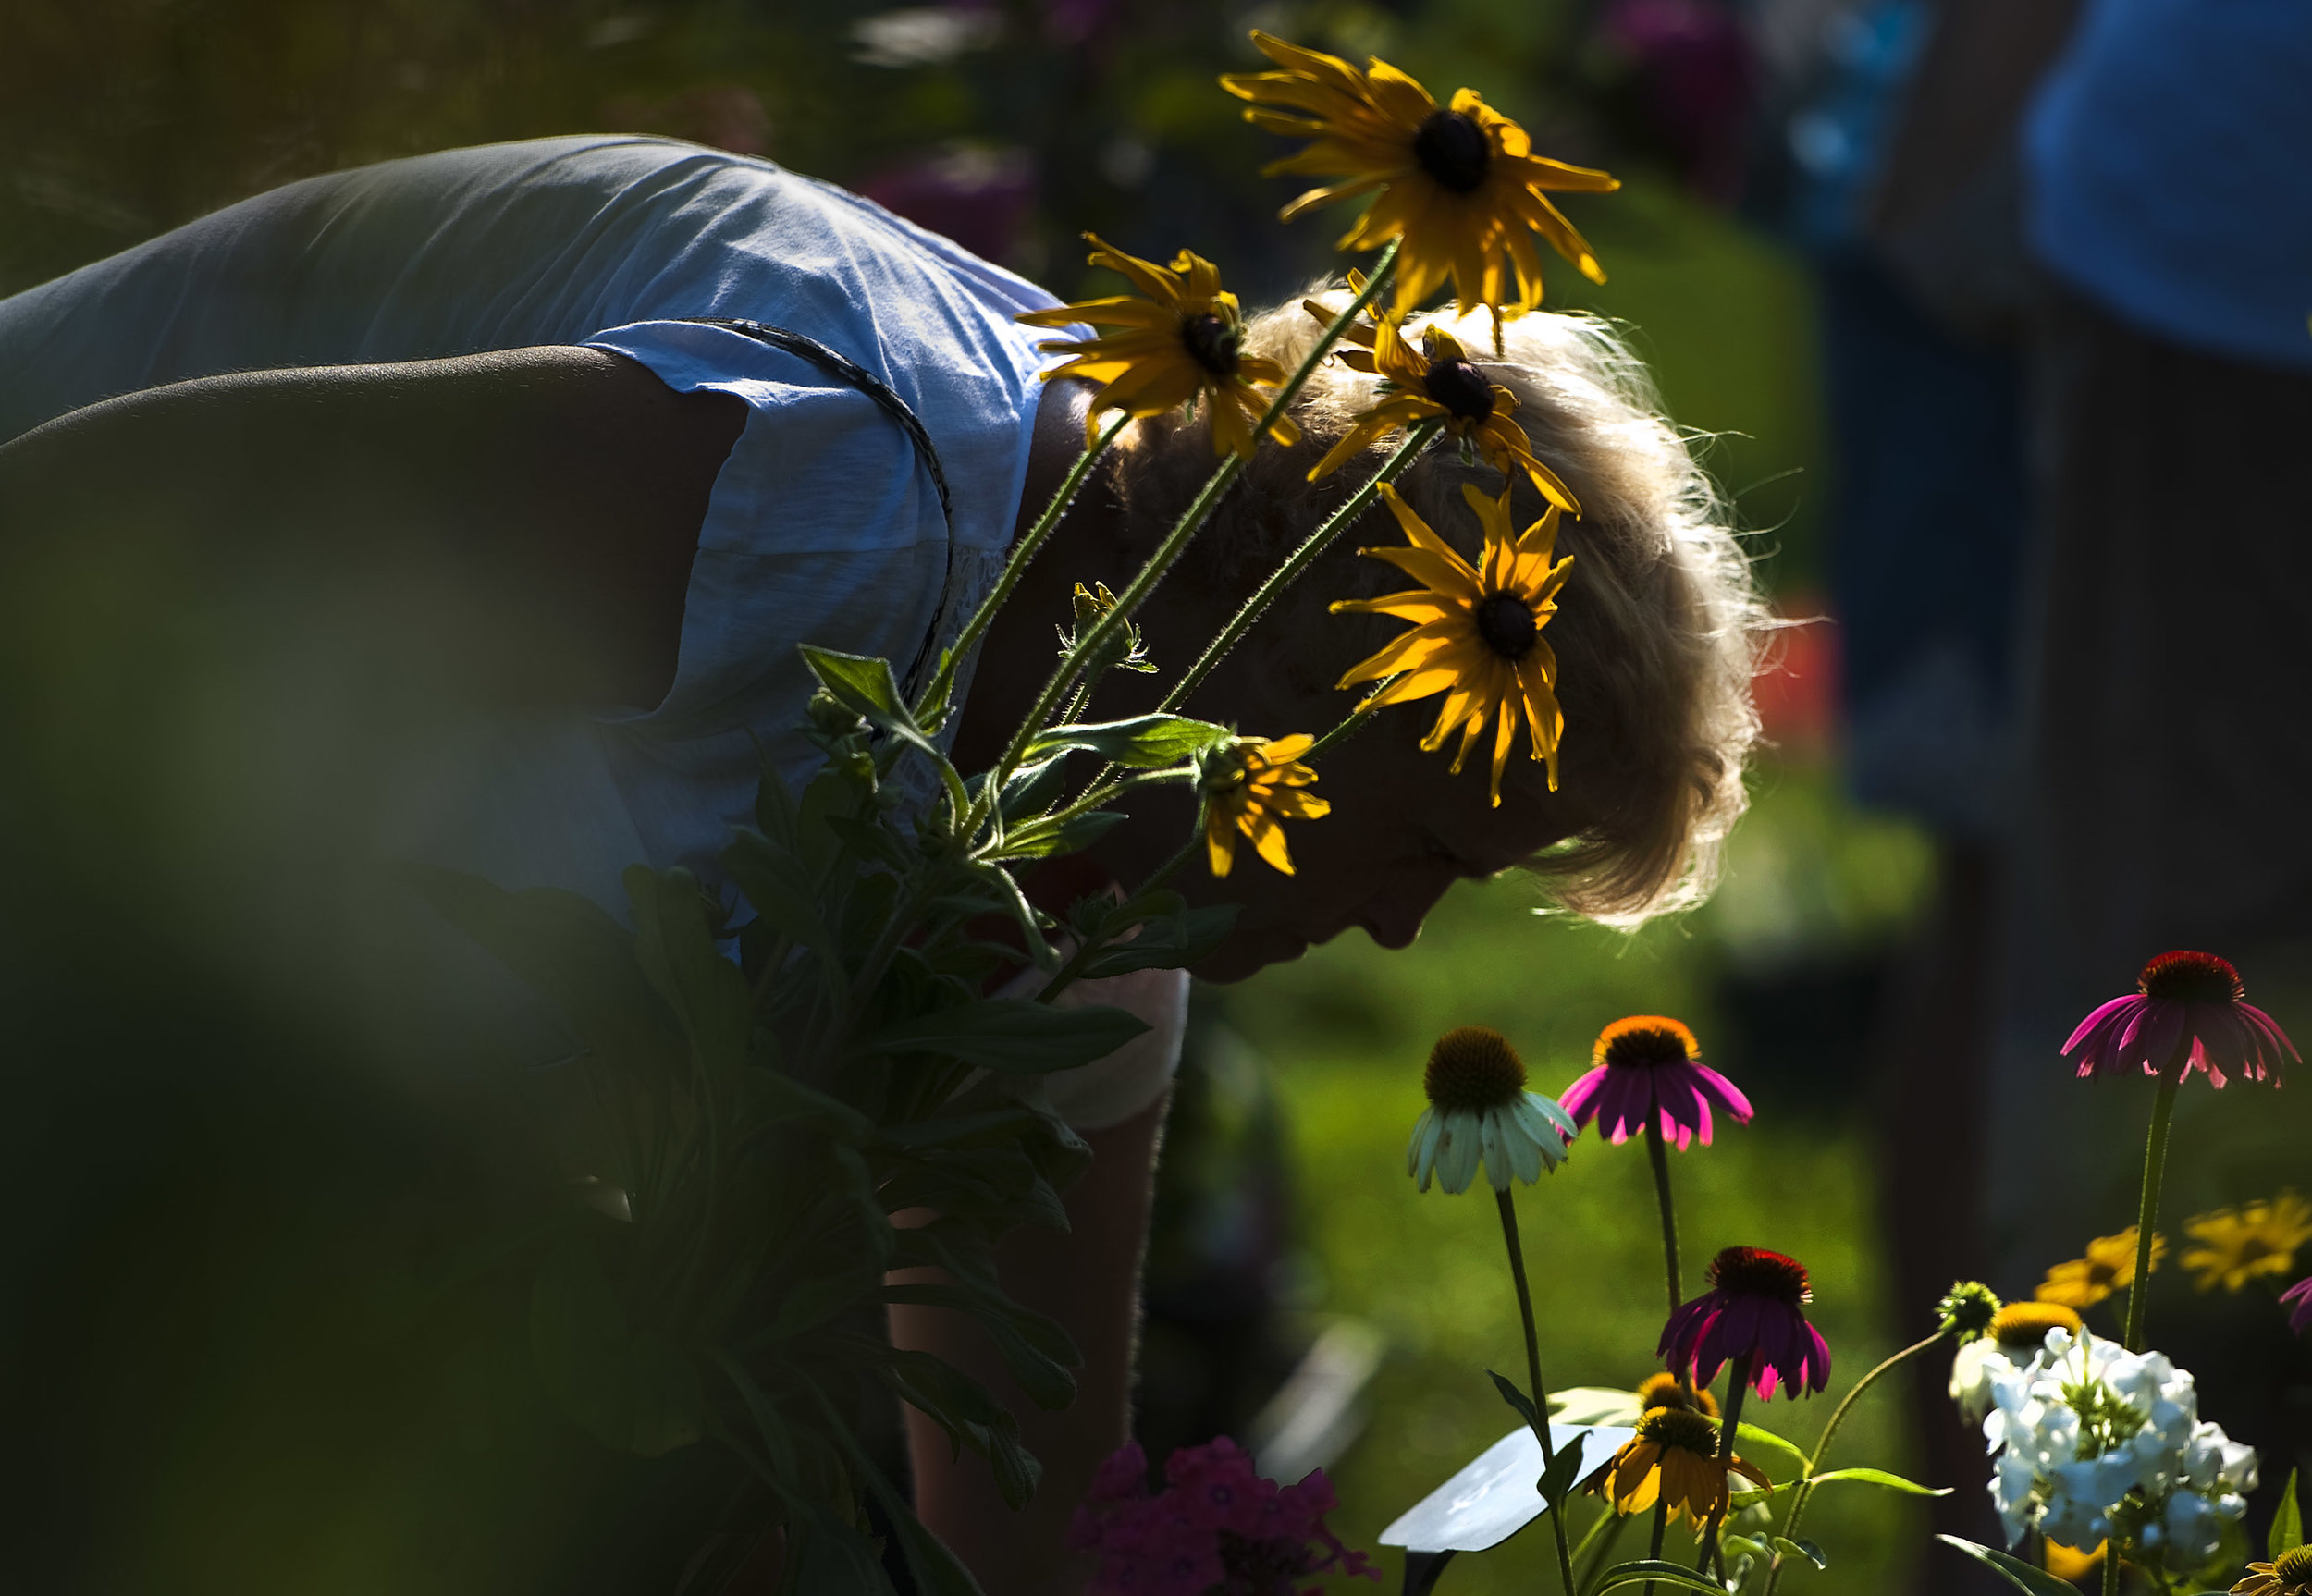 Carol Visnovsky of Johnstown selects a black-eyed susan while shopping the Lamb's Ear Farm booth during the Ligonier Country Market on Saturday, Aug. 20, 2016.